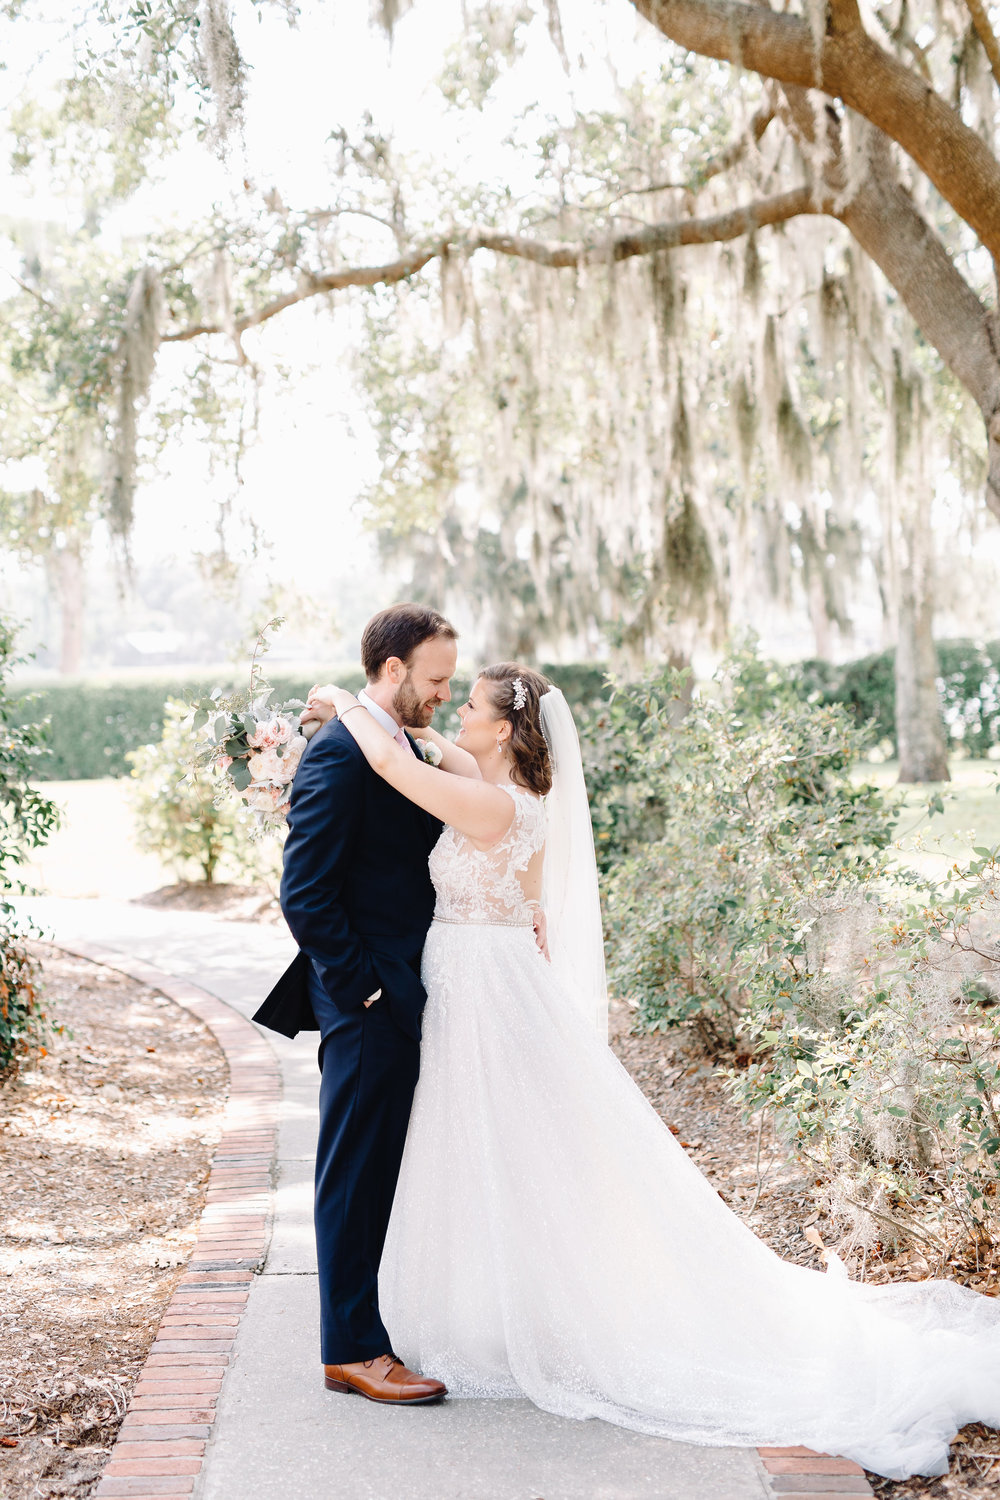 Blush & Gold Wedding at Cypress Grove Estate House  Orlando Wedding Florist Bluegrass Chic  Orlando Bridal Salon Calvet Couture  Orlando Wedding Planner Blue Ribbon Weddings  Orlando Wedding Photographer JP Pratt Photography  Wedding Ceremony at Cypress Grove Estate House  Tented Lakeside Wedding Reception at Cypress Grove Estate House